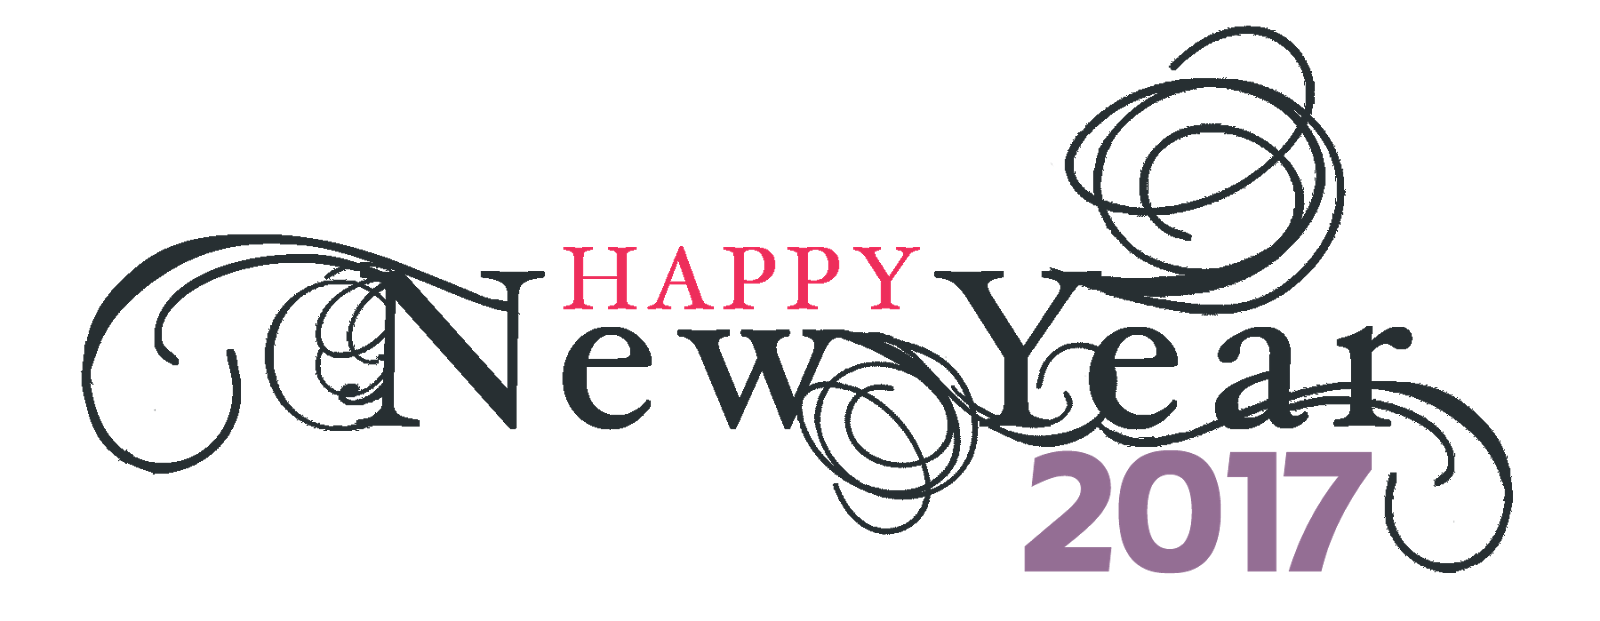 Free New Year 2017 Wallpapers - Wallpaper Cave